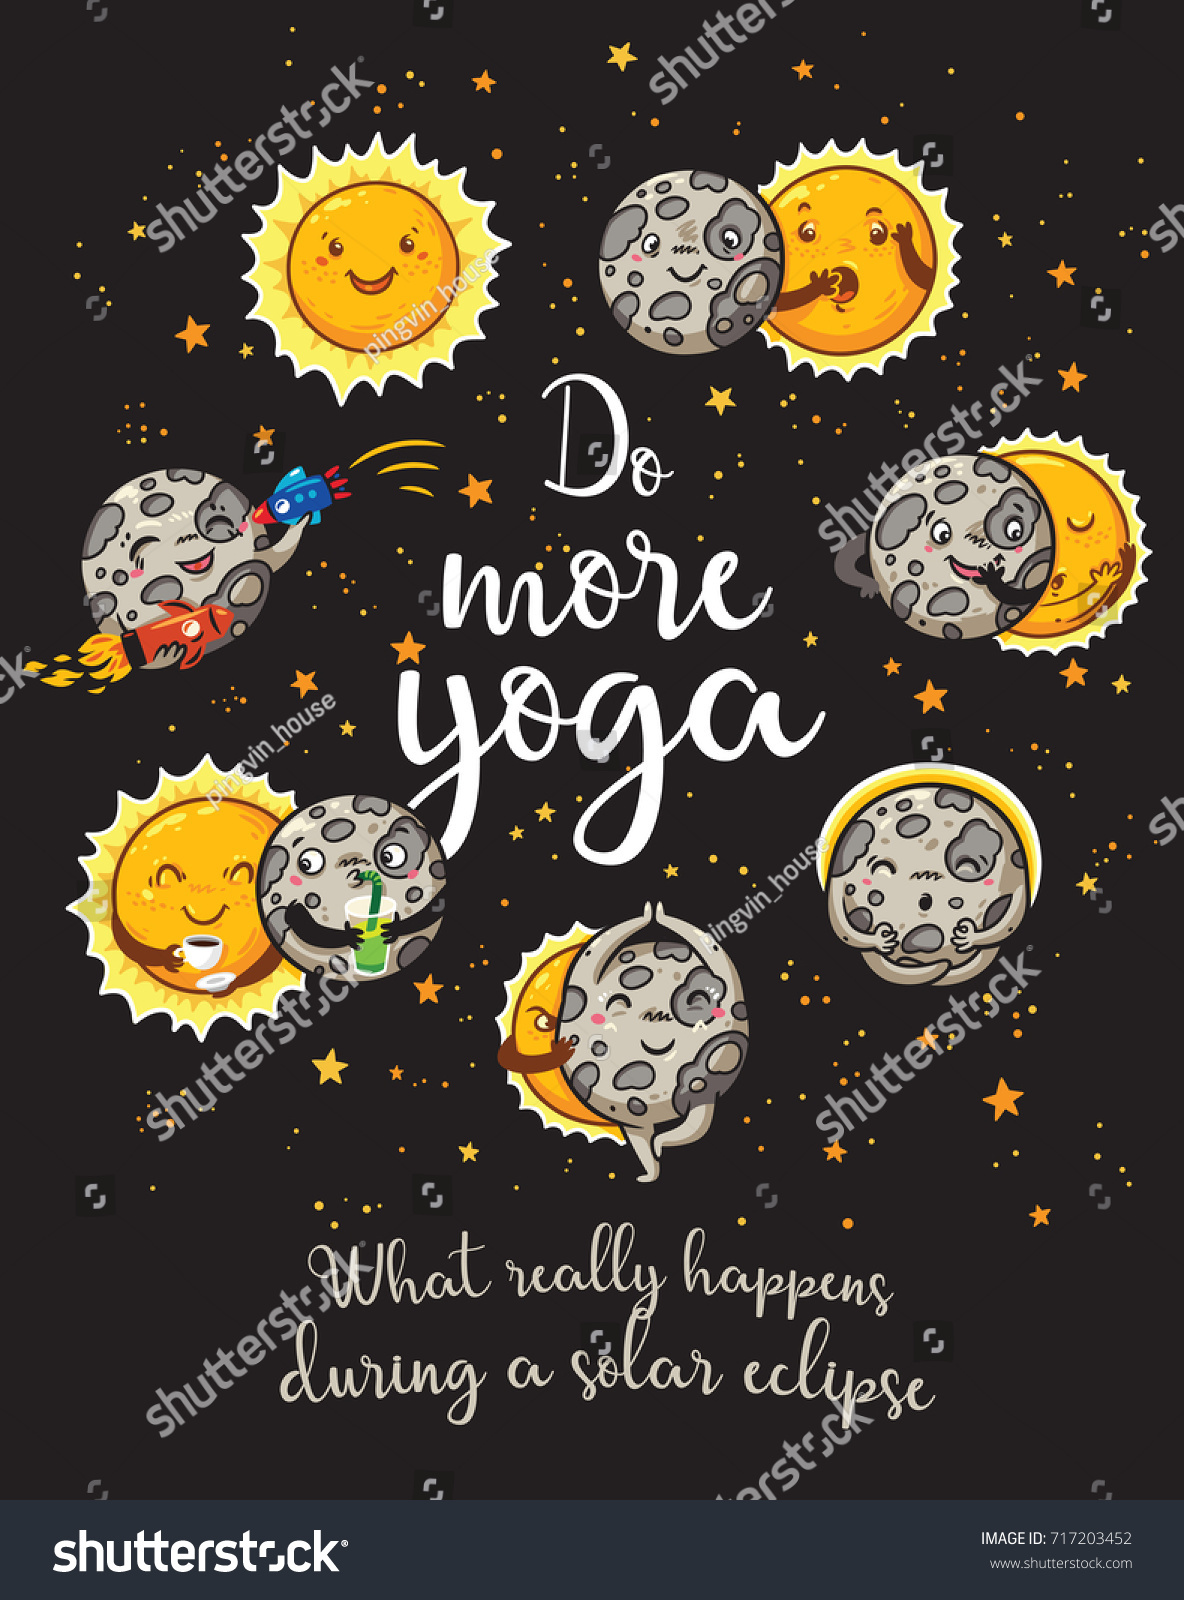 Sun And Moon Quotes Do More Yoga Quote Card Hand Stock Vector 717203452  Shutterstock